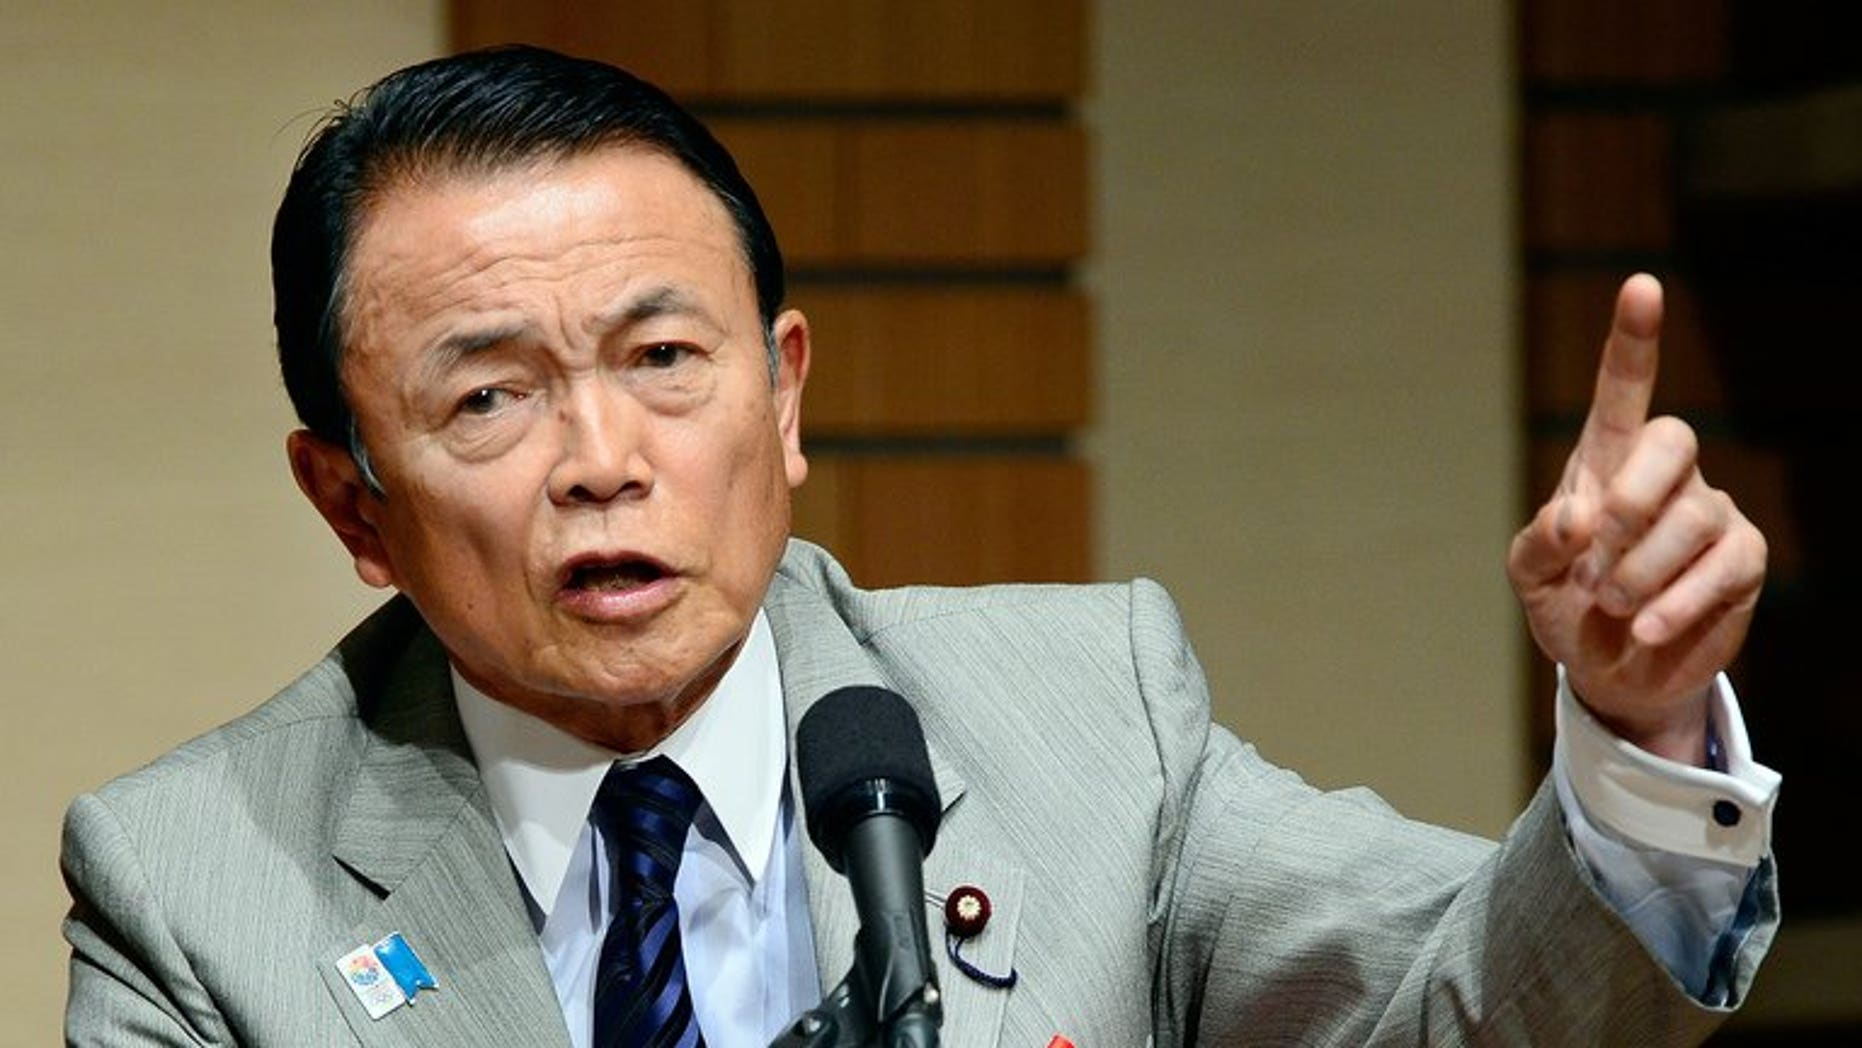 Japanese Finance and Deputy Prime Minister Taro Aso talks to the media in Tokyo, June 28, 2013. The gaffe-prone Aso has retracted controversial remarks that suggested Tokyo could learn from Nazi Germany when it comes to constitutional reform.